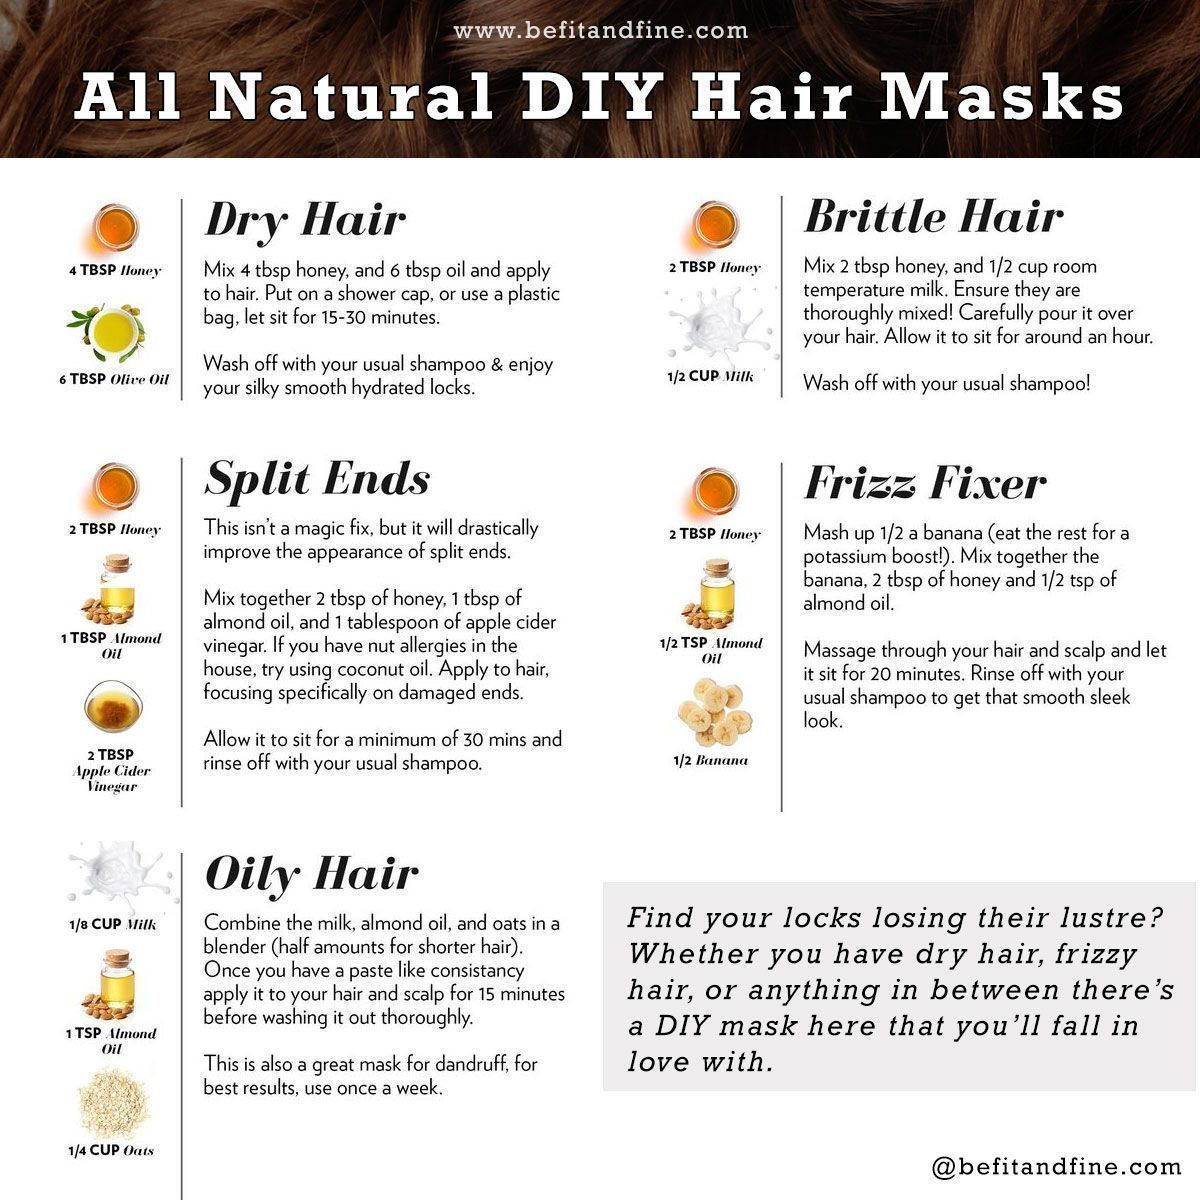 All Natural Diy Hair Masks Dry Hair Split End Oily Hair Brittle Hair Frizz Brittle Diy Dry Frizz Hair Mask For Damaged Hair Dry Hair Mask Dry Hair